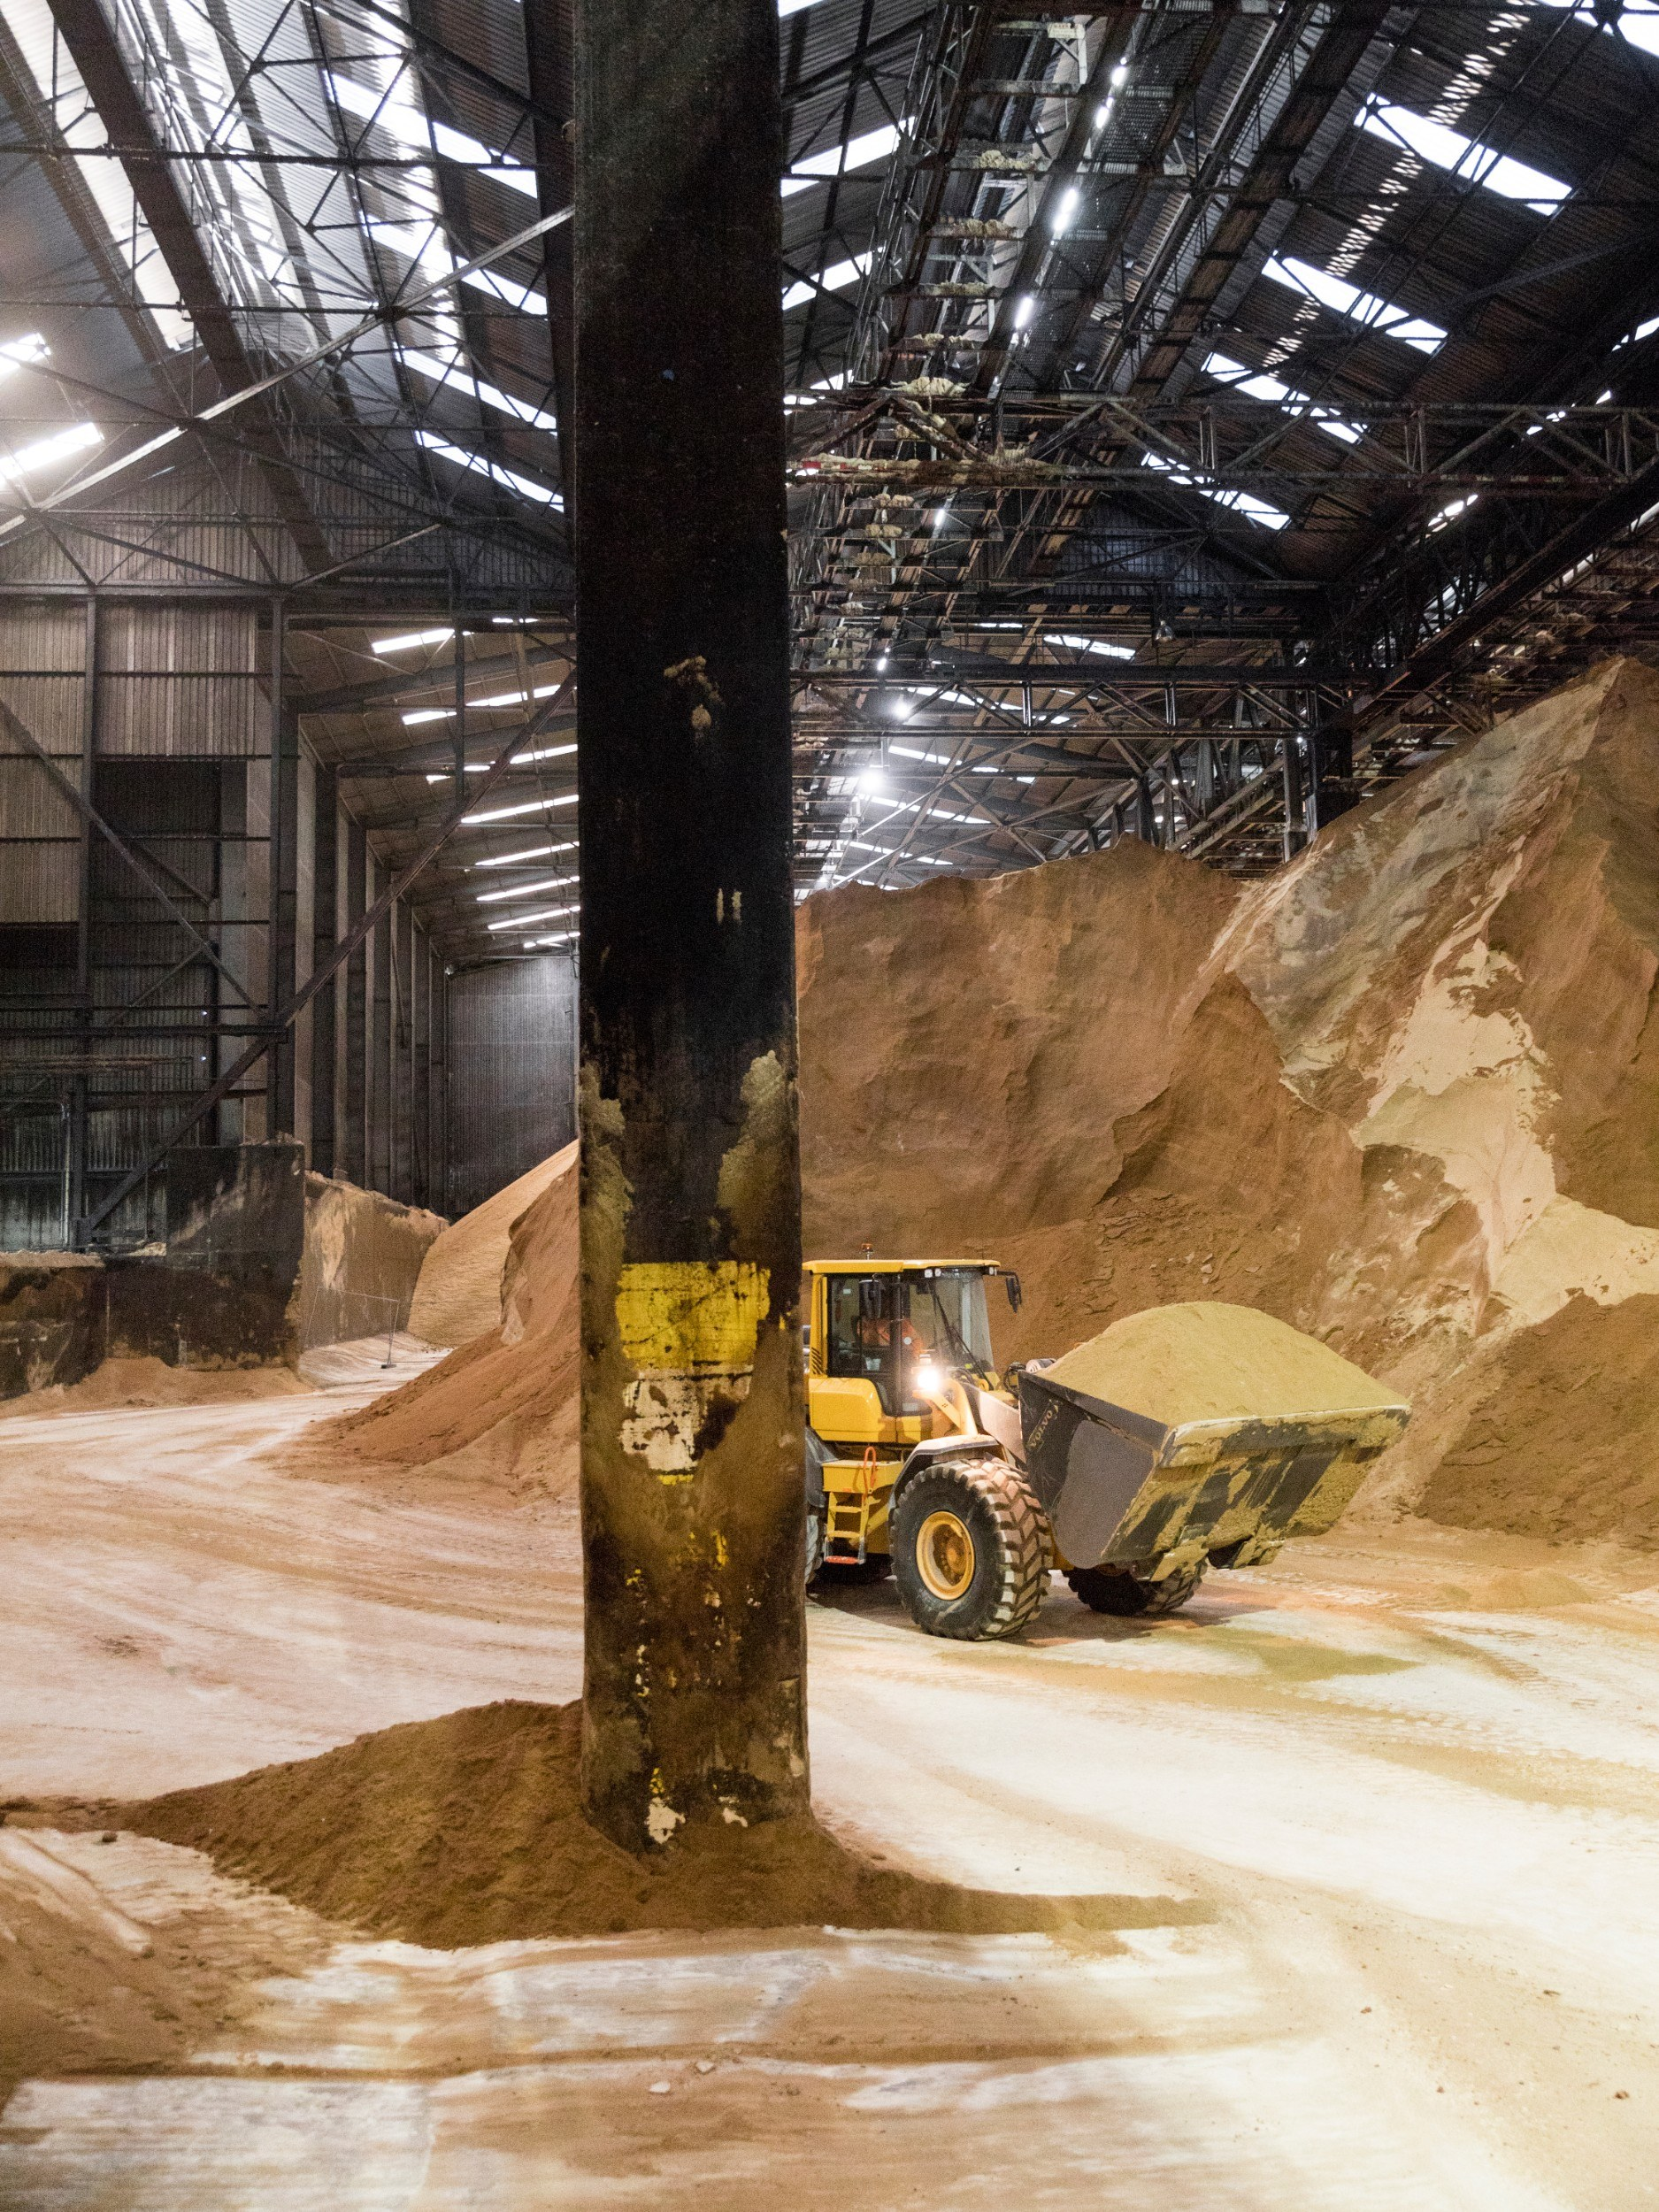 Mounds of sugar several storeys high in a warehouse with a digger moving it around